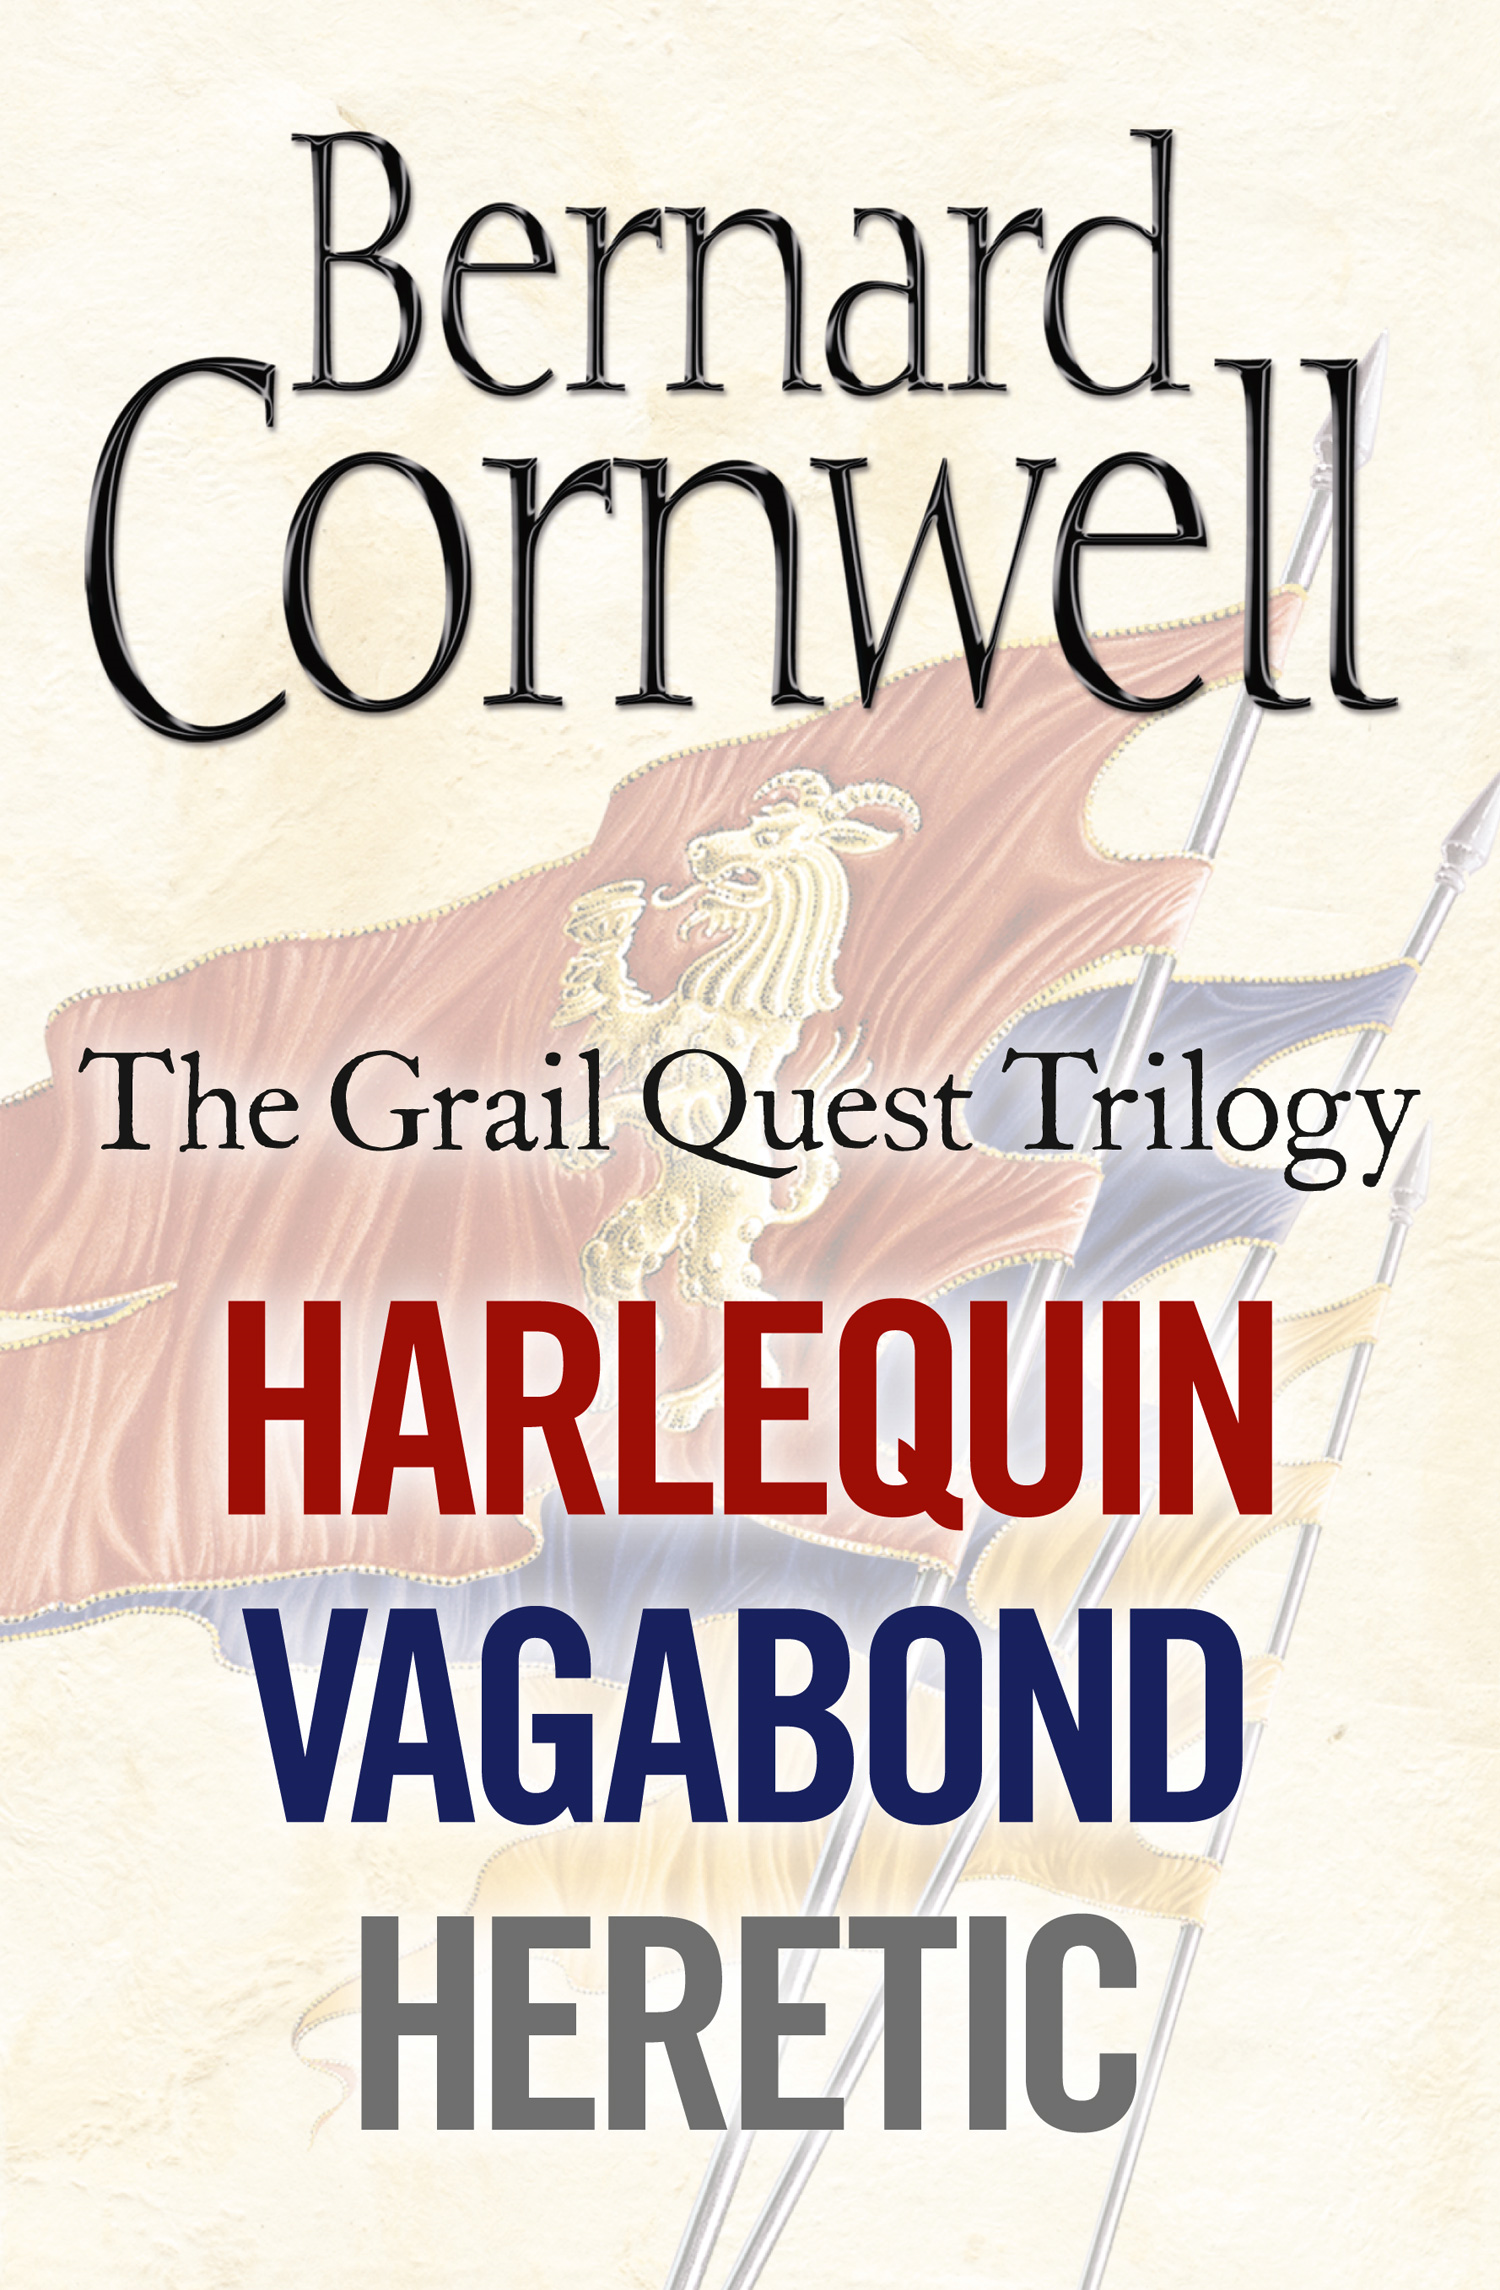 The Grail Quest Books 1-3: Harlequin, Vagabond, Heretic